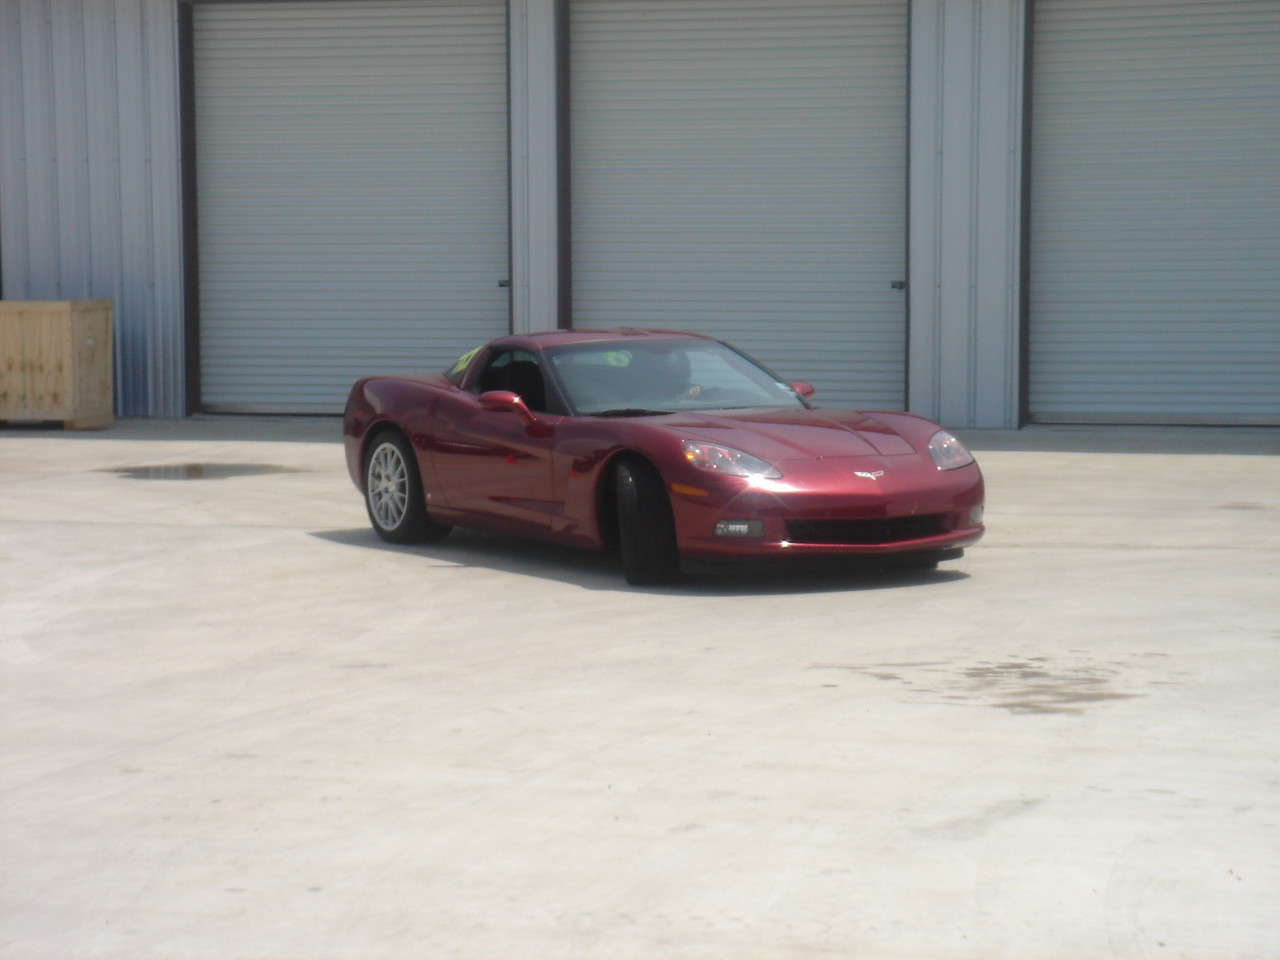 C6 non-Z51 that I rode in